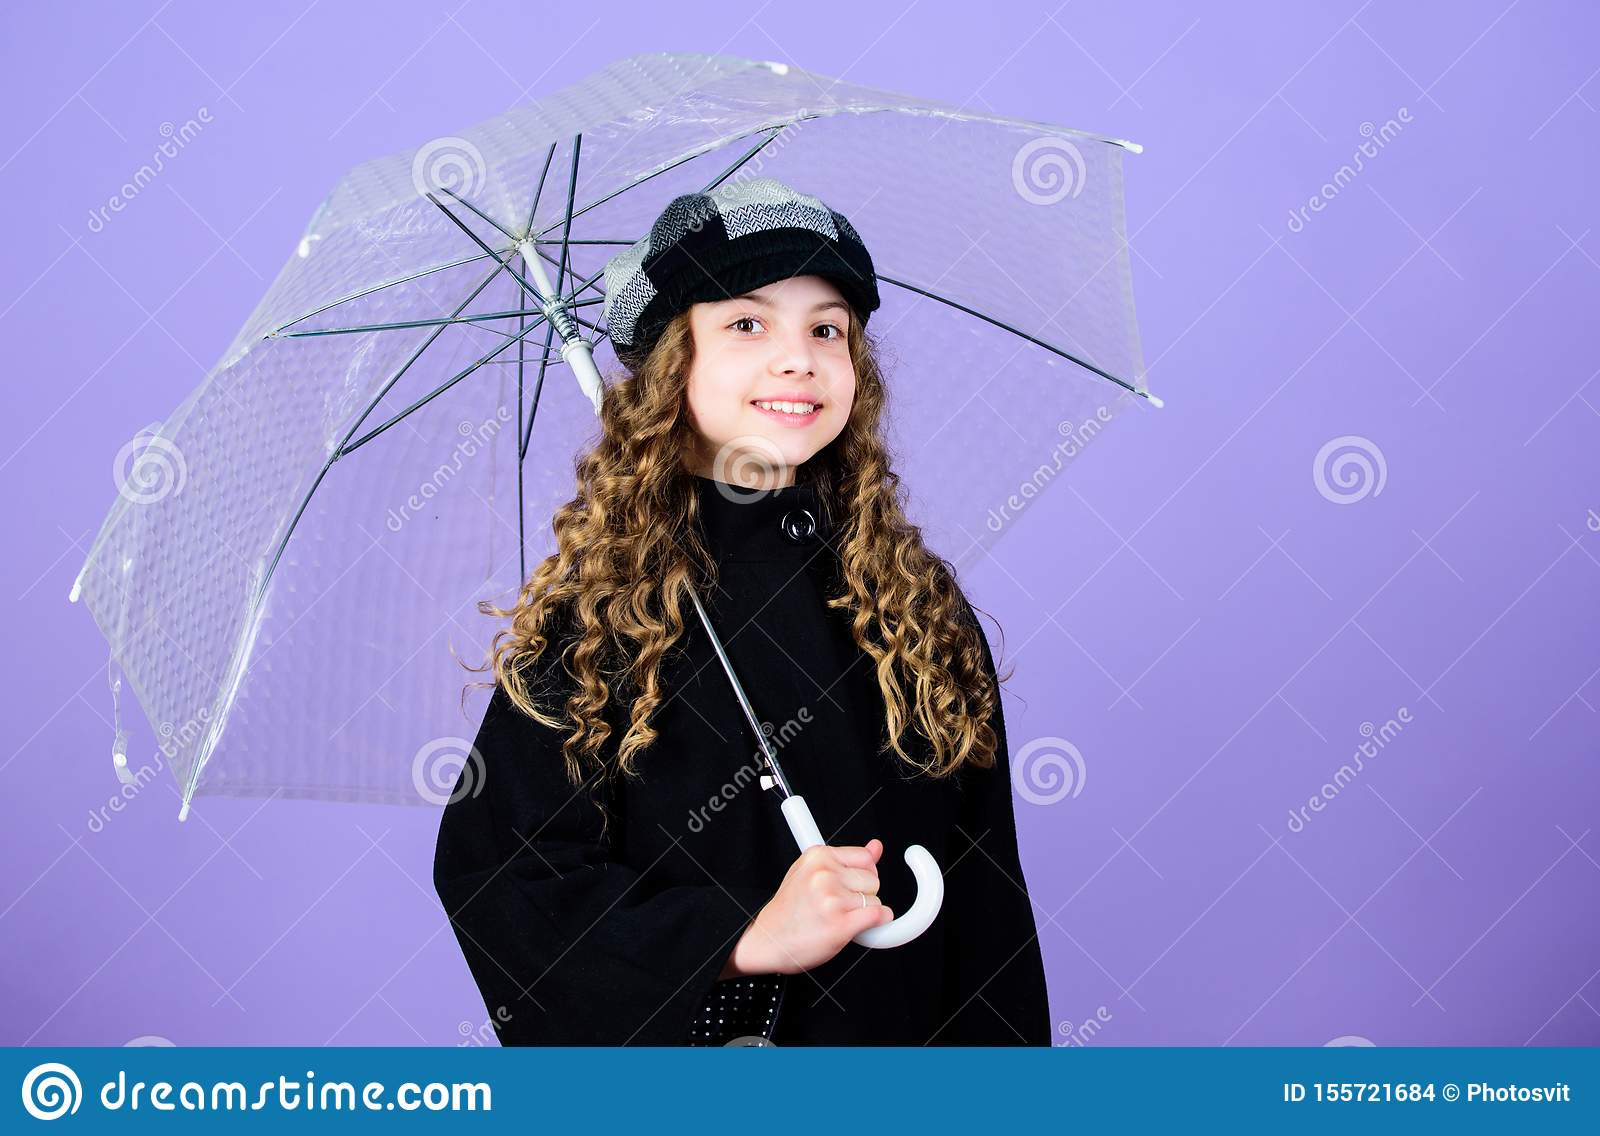 Enjoy rainy weather with proper garments. Waterproof accessories make rainy day fun. Fall season. Enjoy rain concept